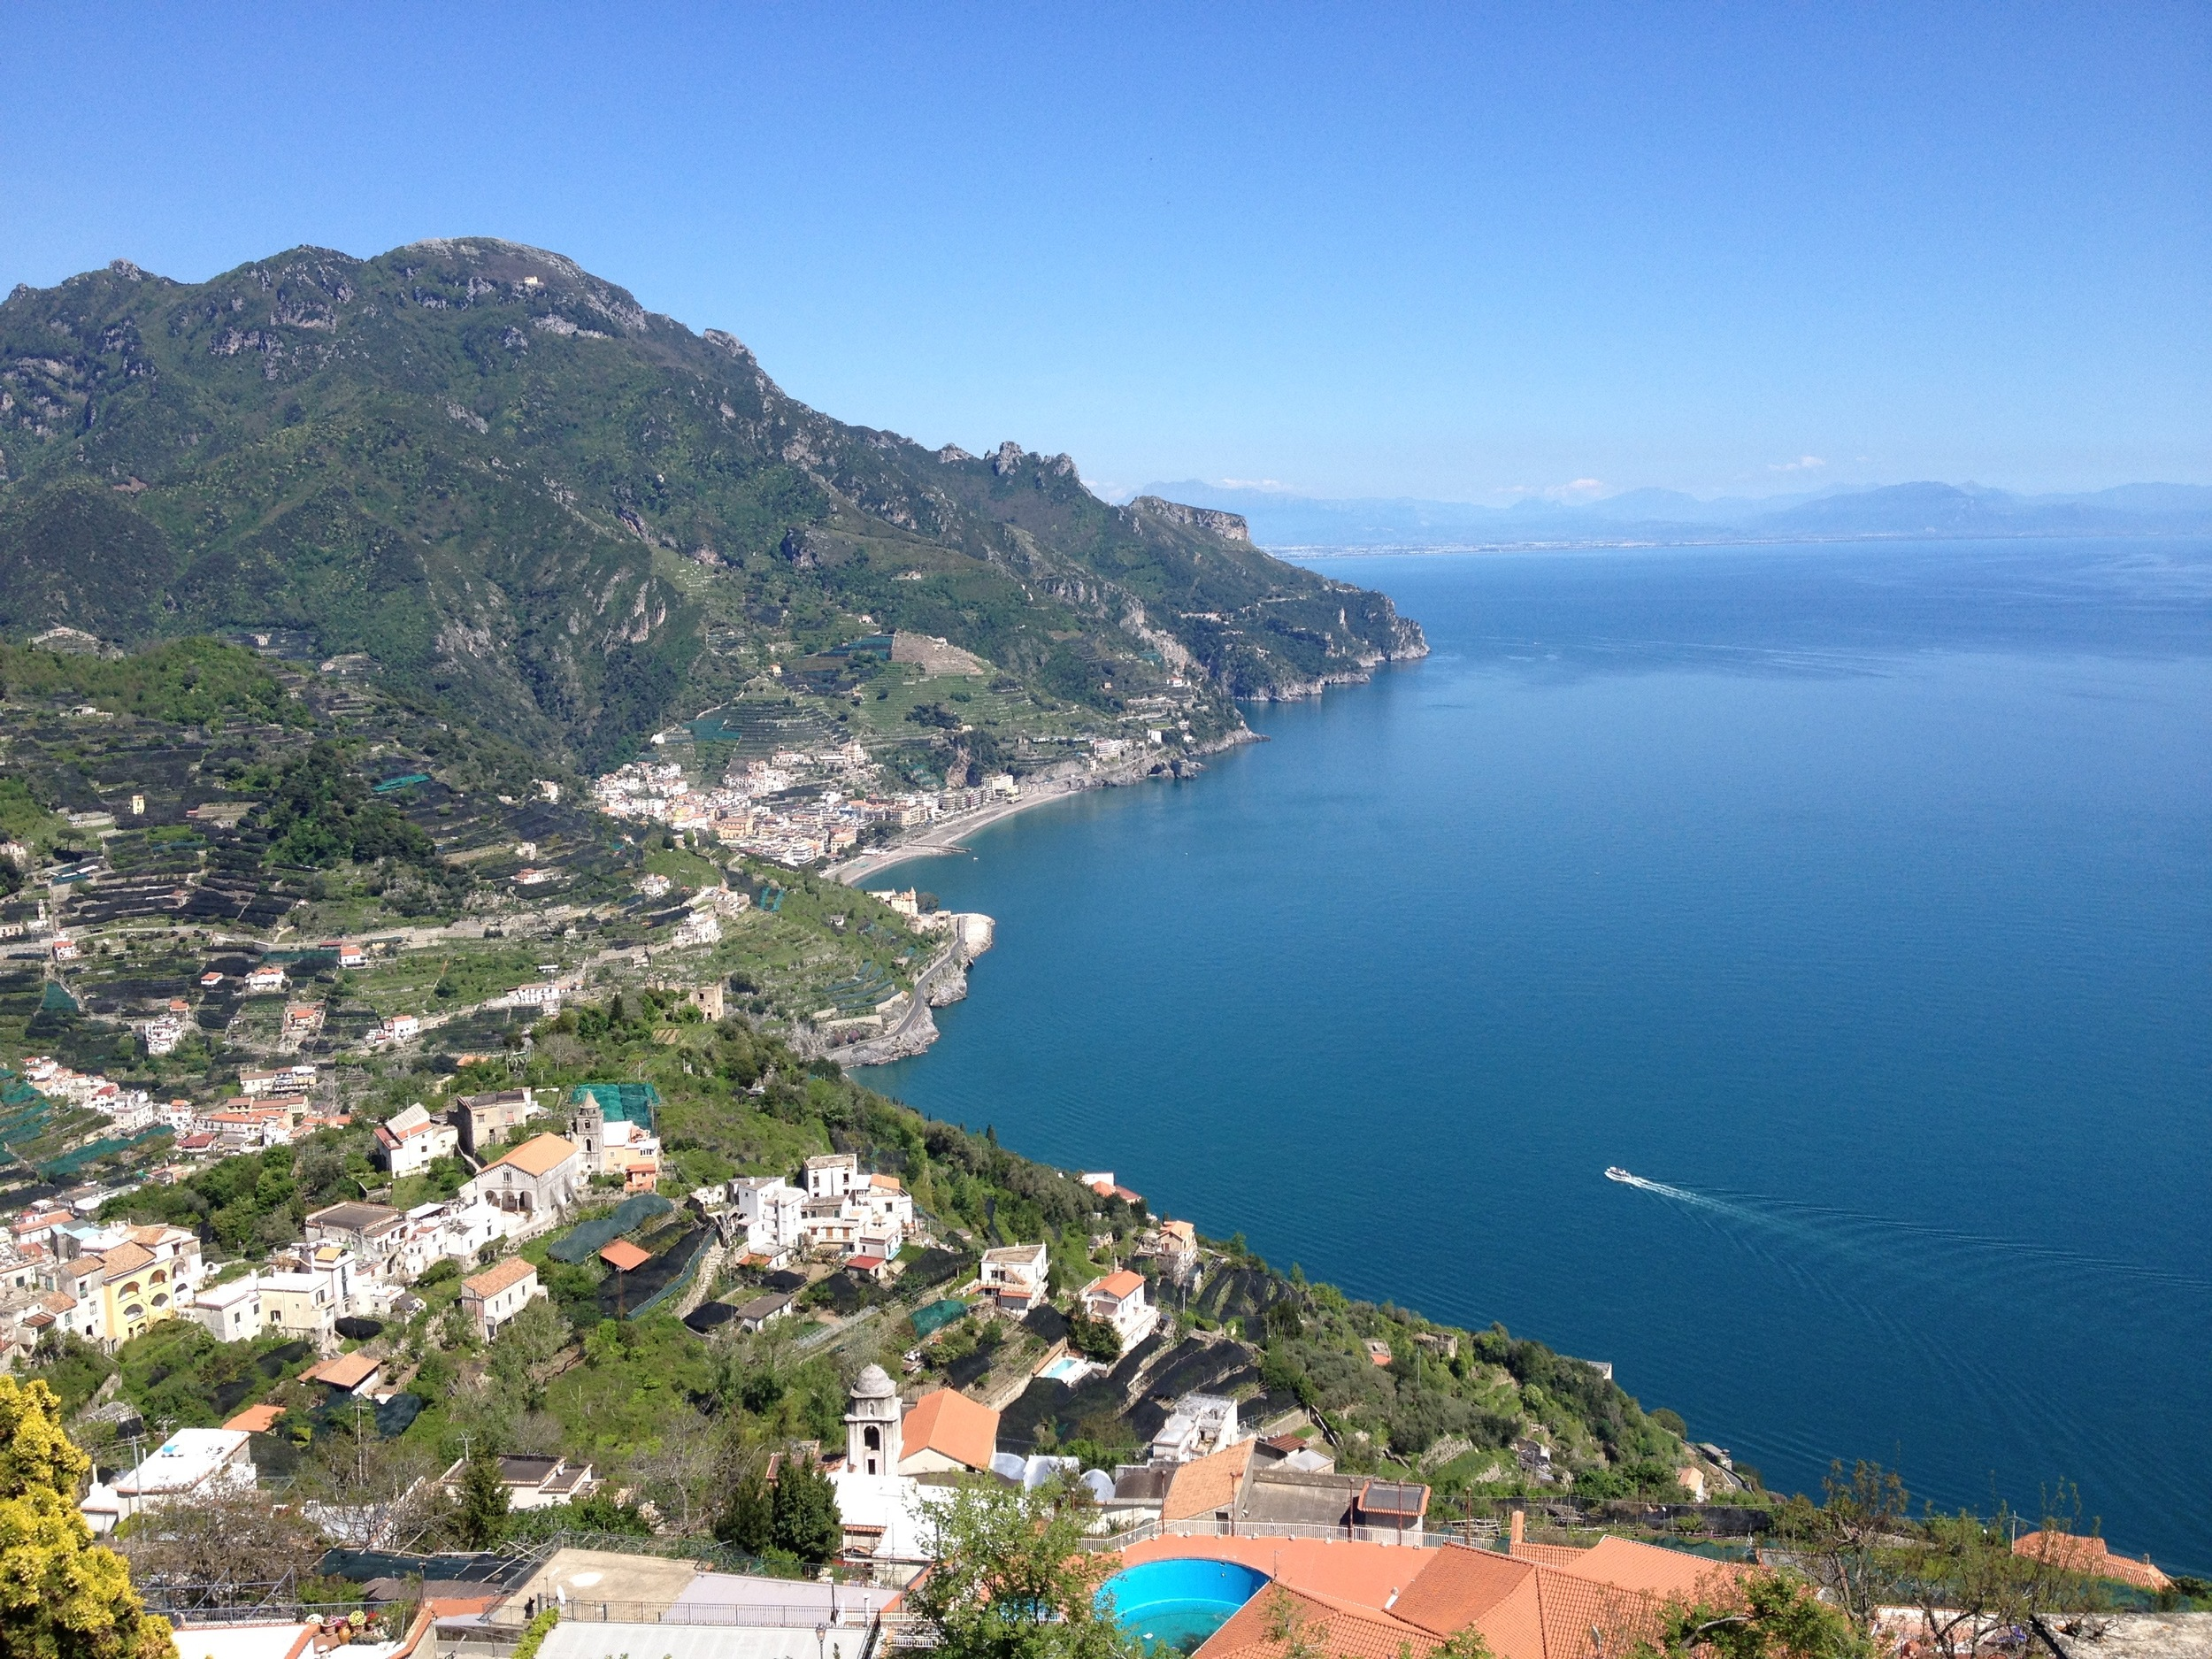 The view from Ravello high up above the Amalfi coast